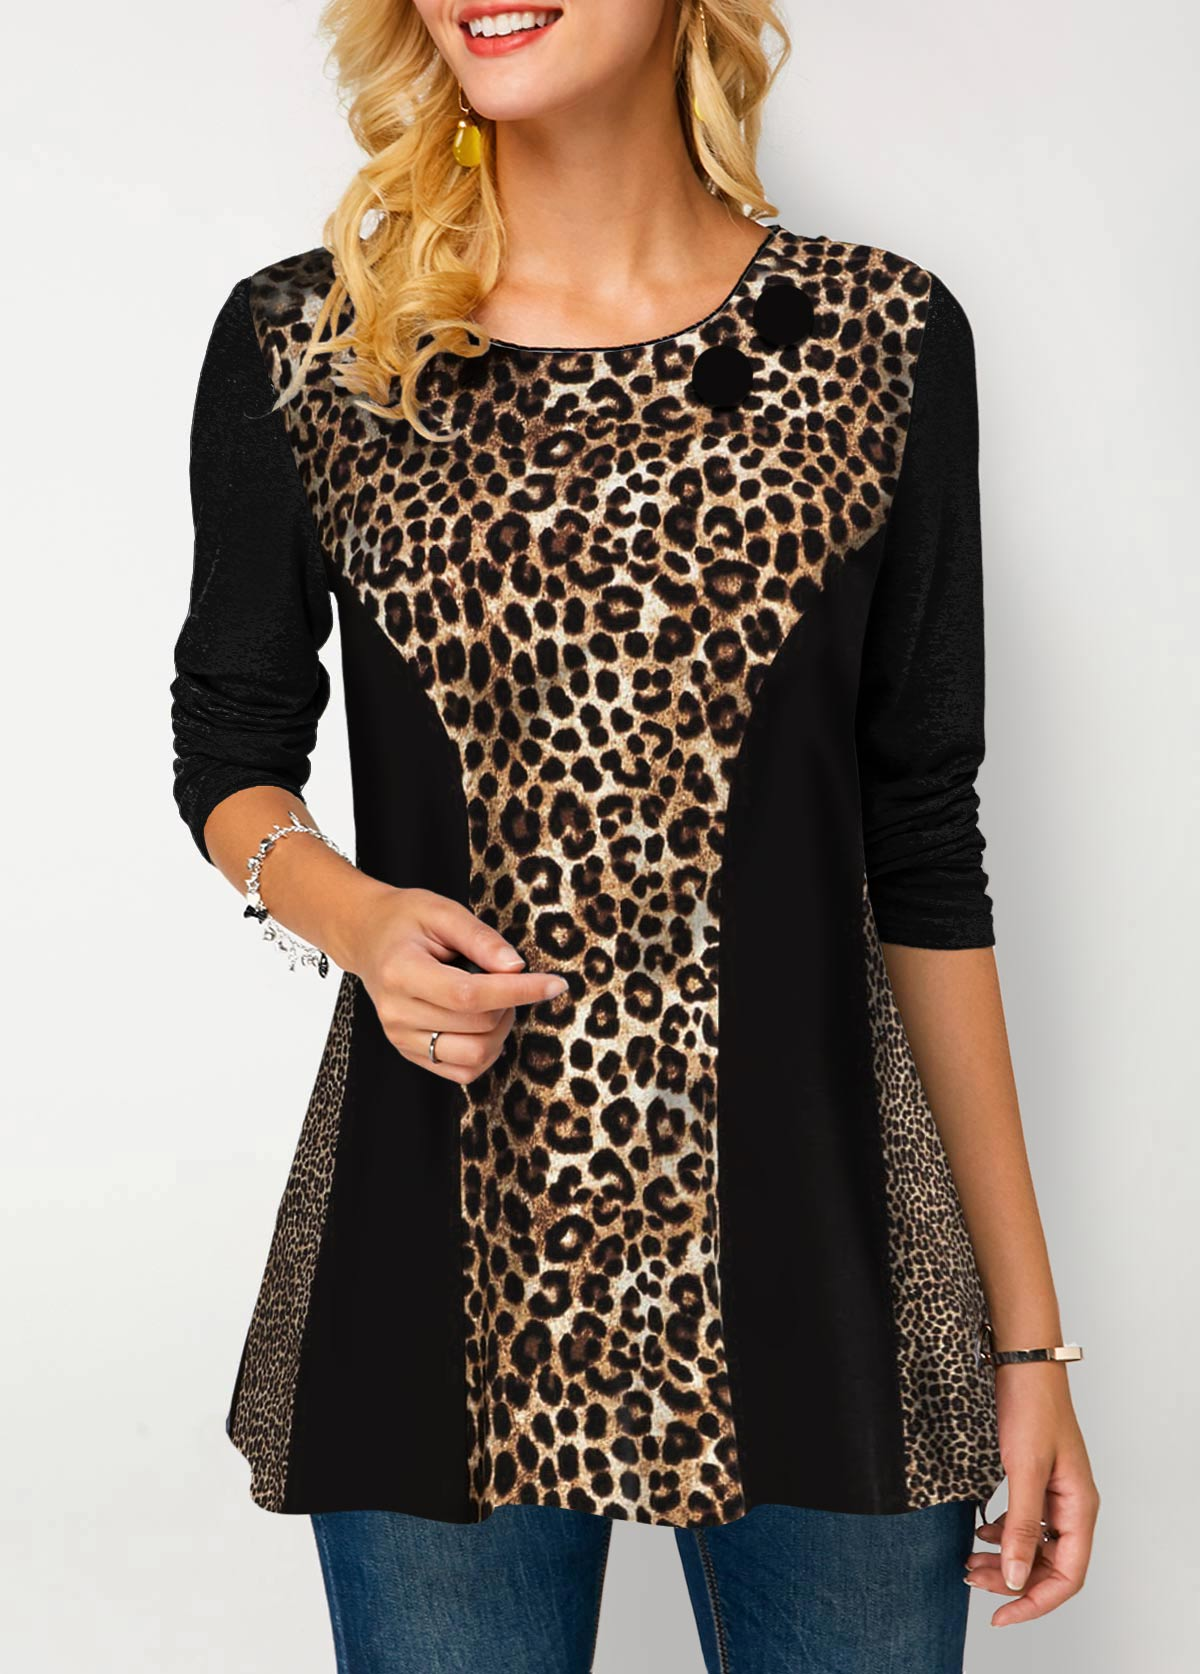 Long Sleeve Round Neck Leopard Print T Shirt